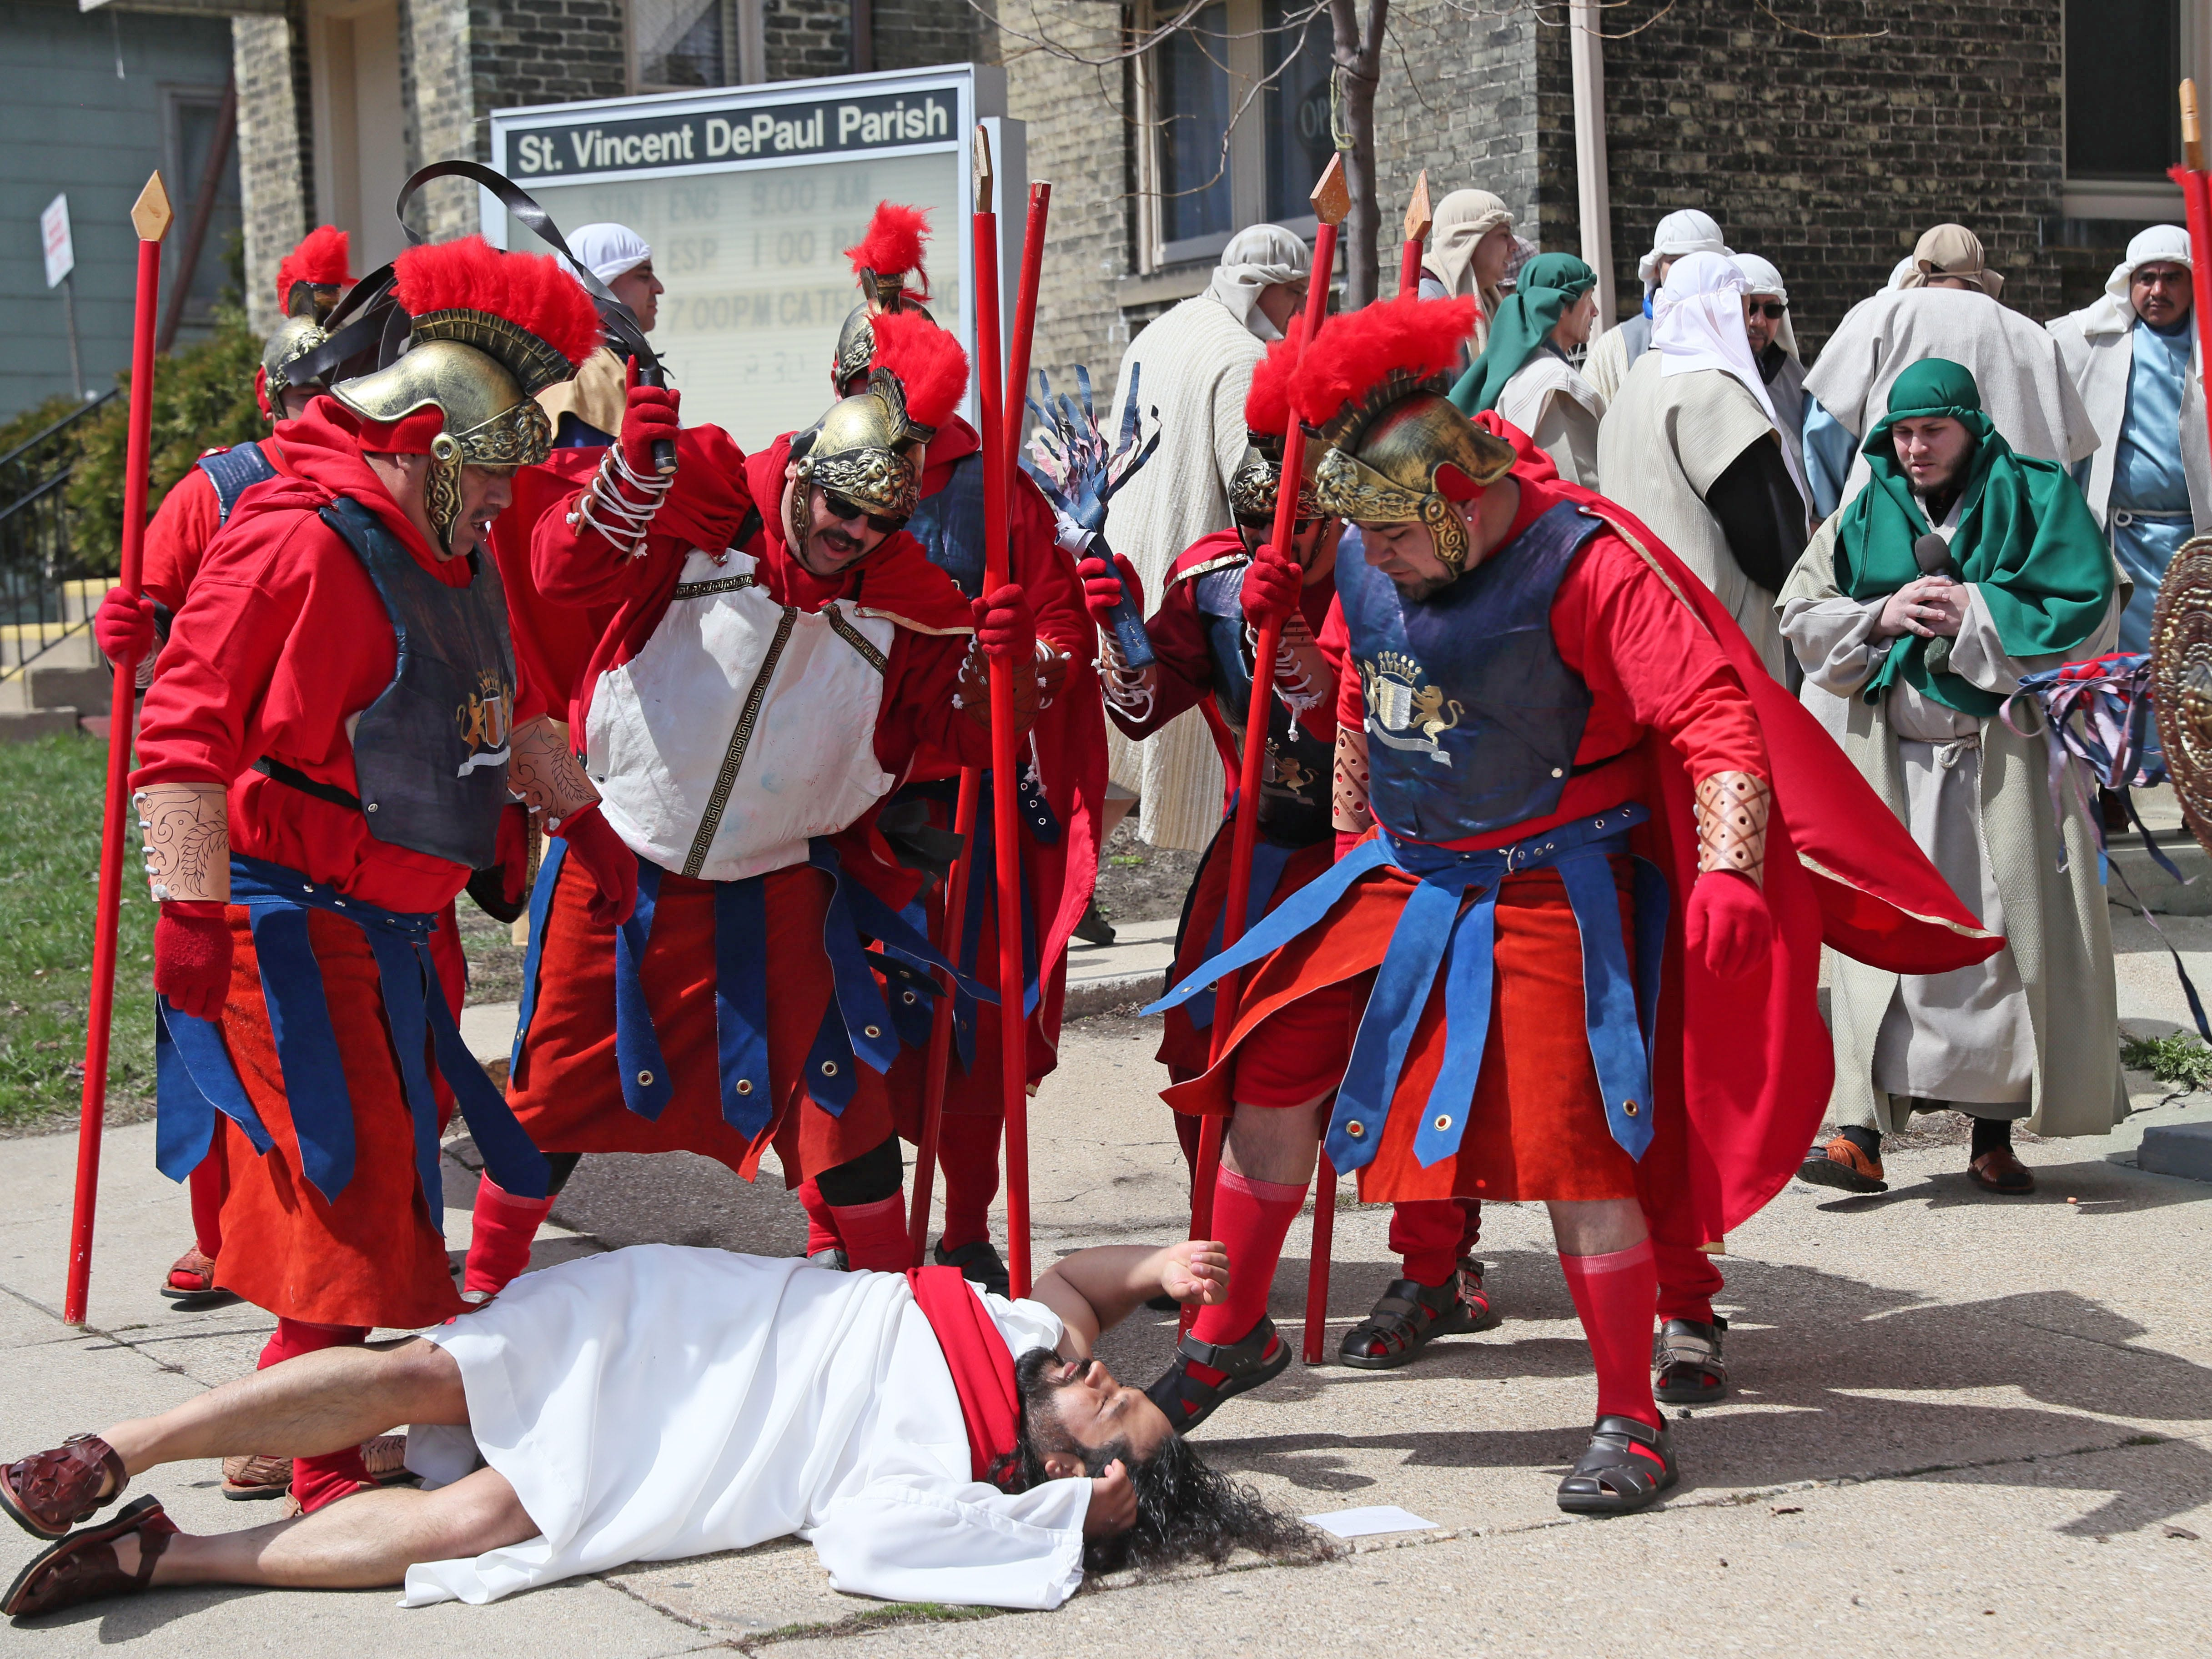 Jesus is beaten and kicked after his arrest by Roman soldiers.